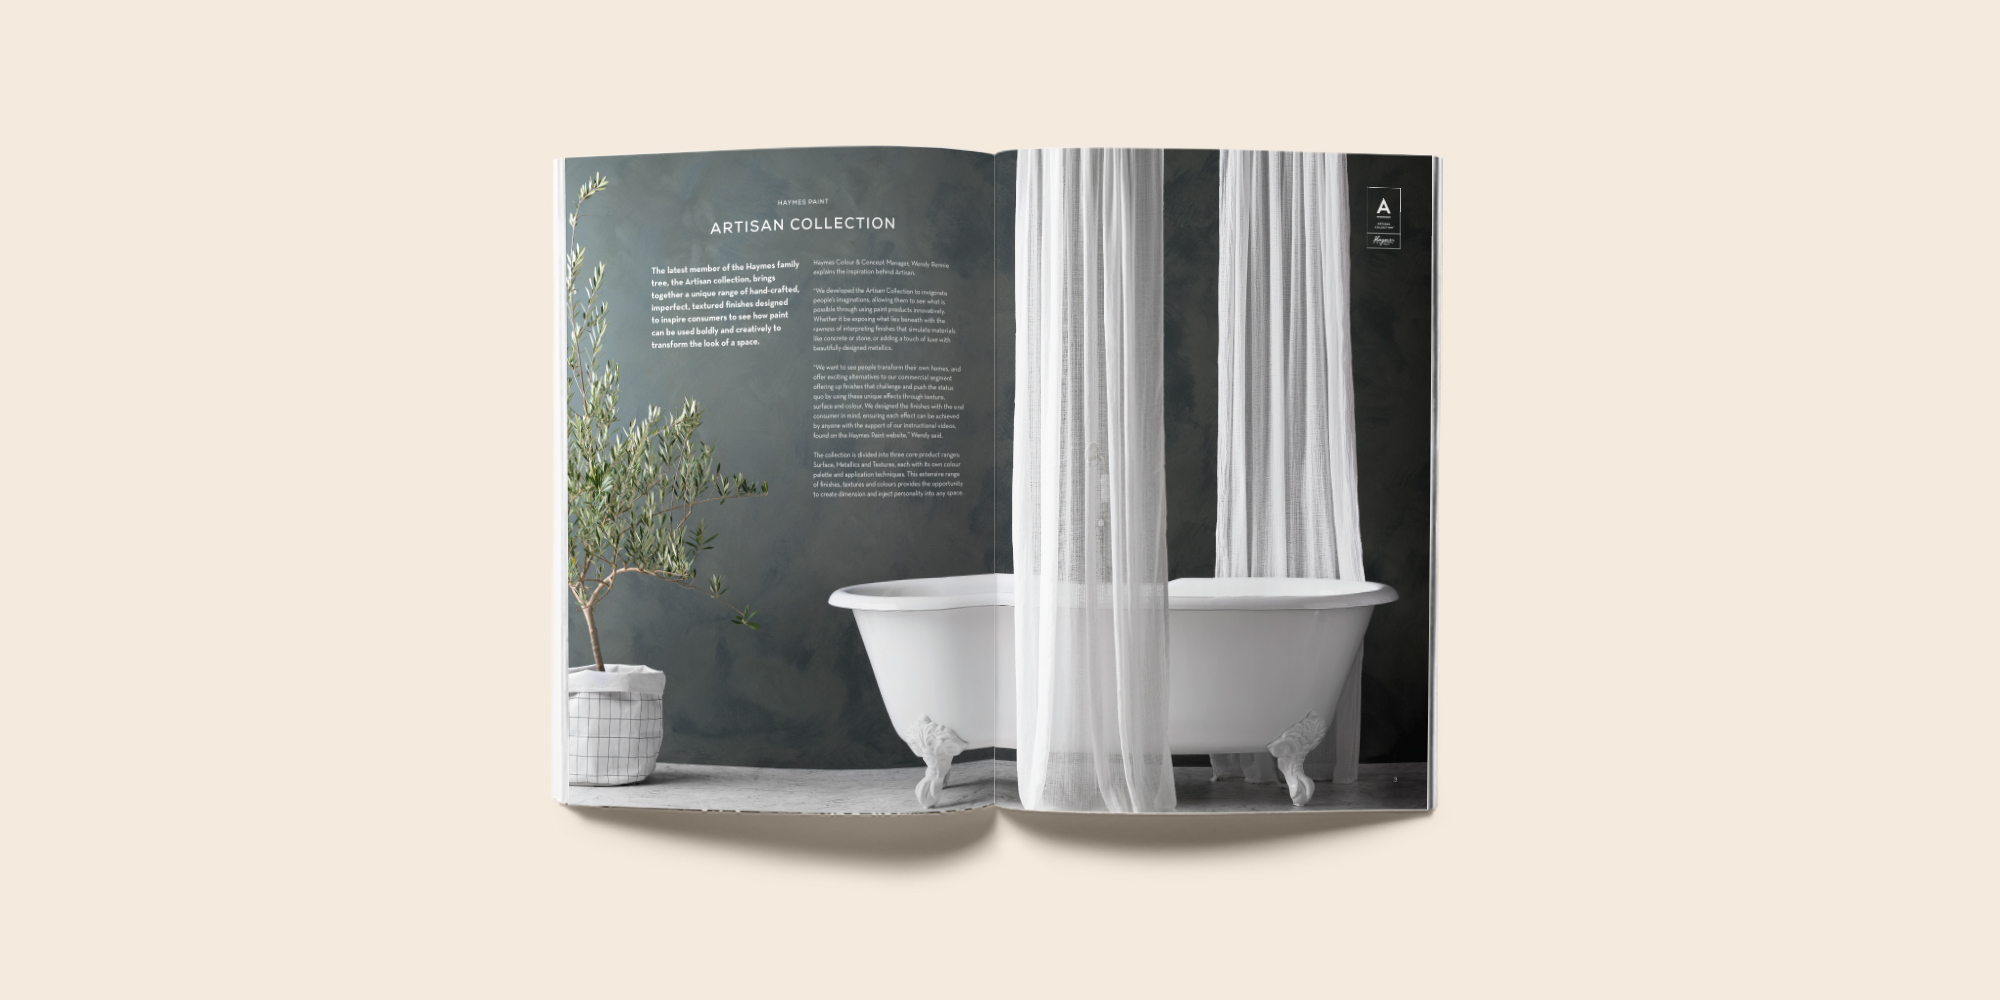 Haymes Artisan Collection Product Manual